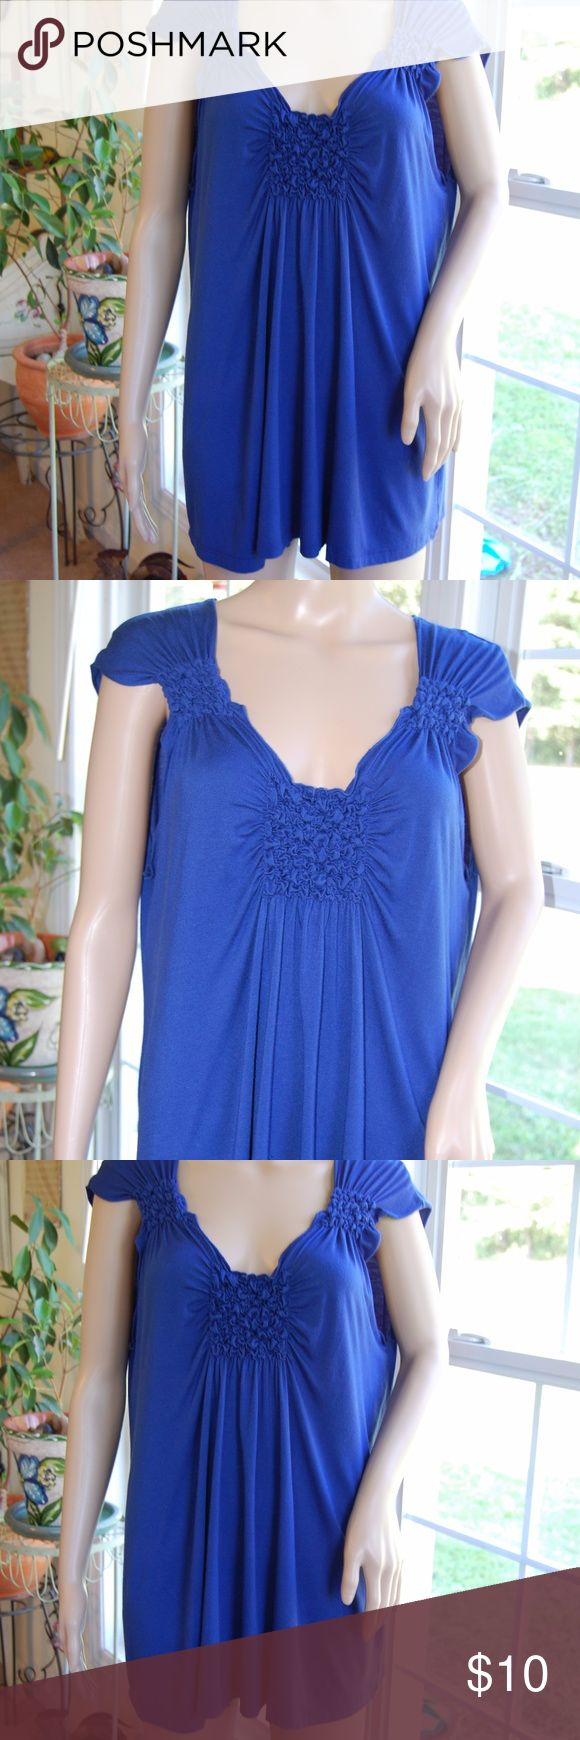 """Lush Royal Blue Smocked  Top Bust = 42"""" Length = 28"""" - No size tag, but bust measurement suggests it is an L or XL. Lush Tops"""